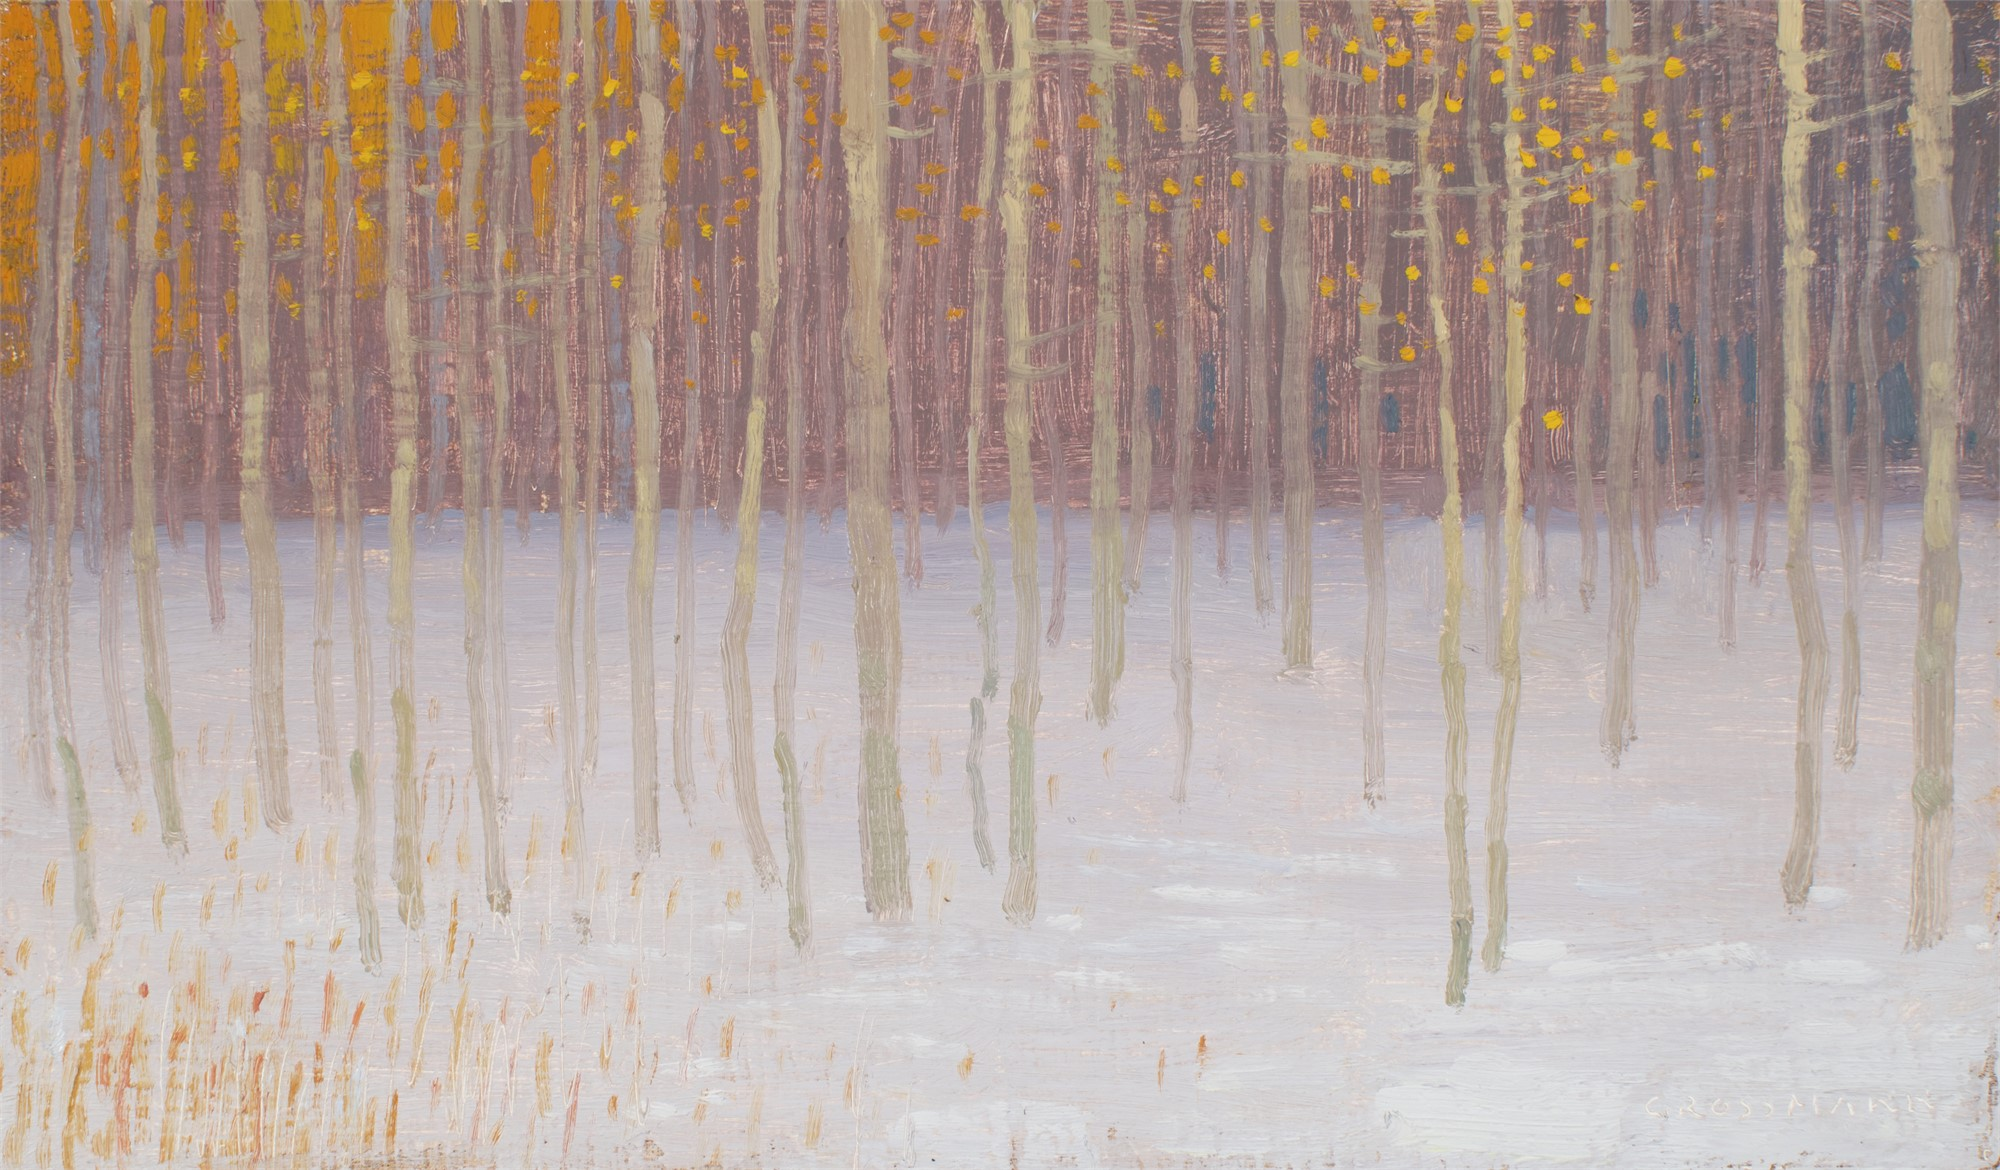 Snow and Remants of Autumn Colors by David Grossmann